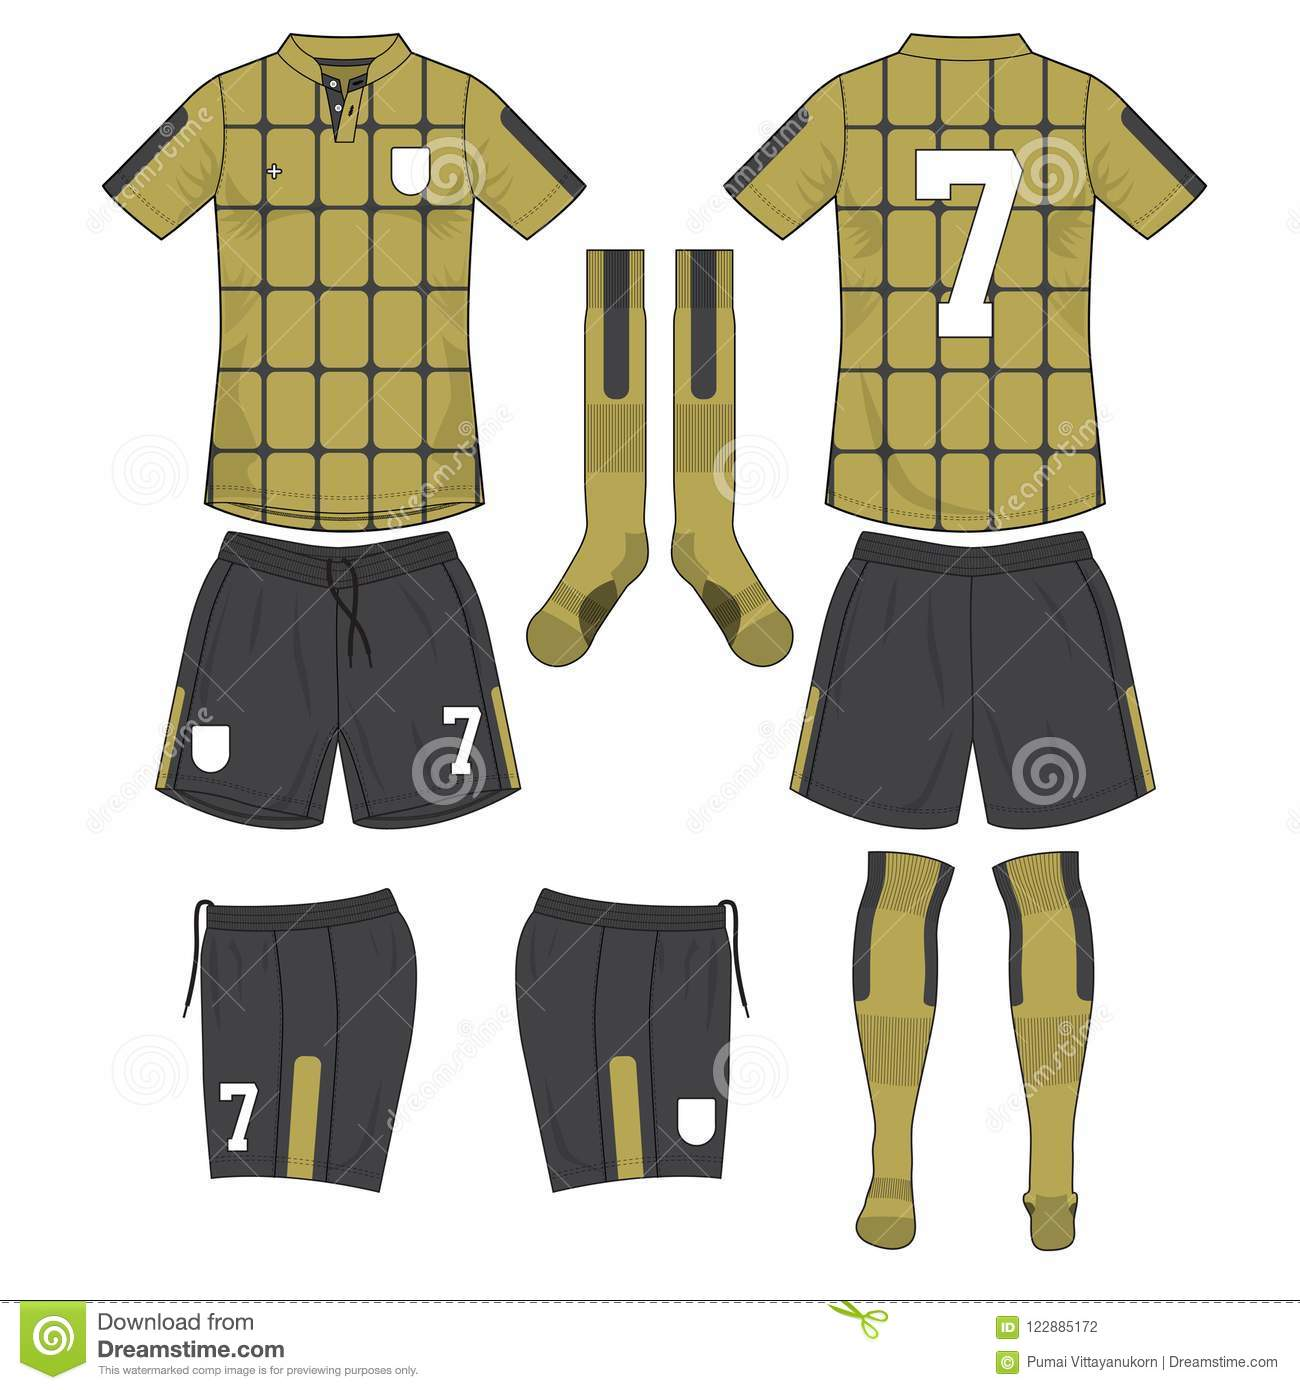 4407c5262ef51c Gold And Black Soccer Jersey With Sock And Short Mock Up Stock ...